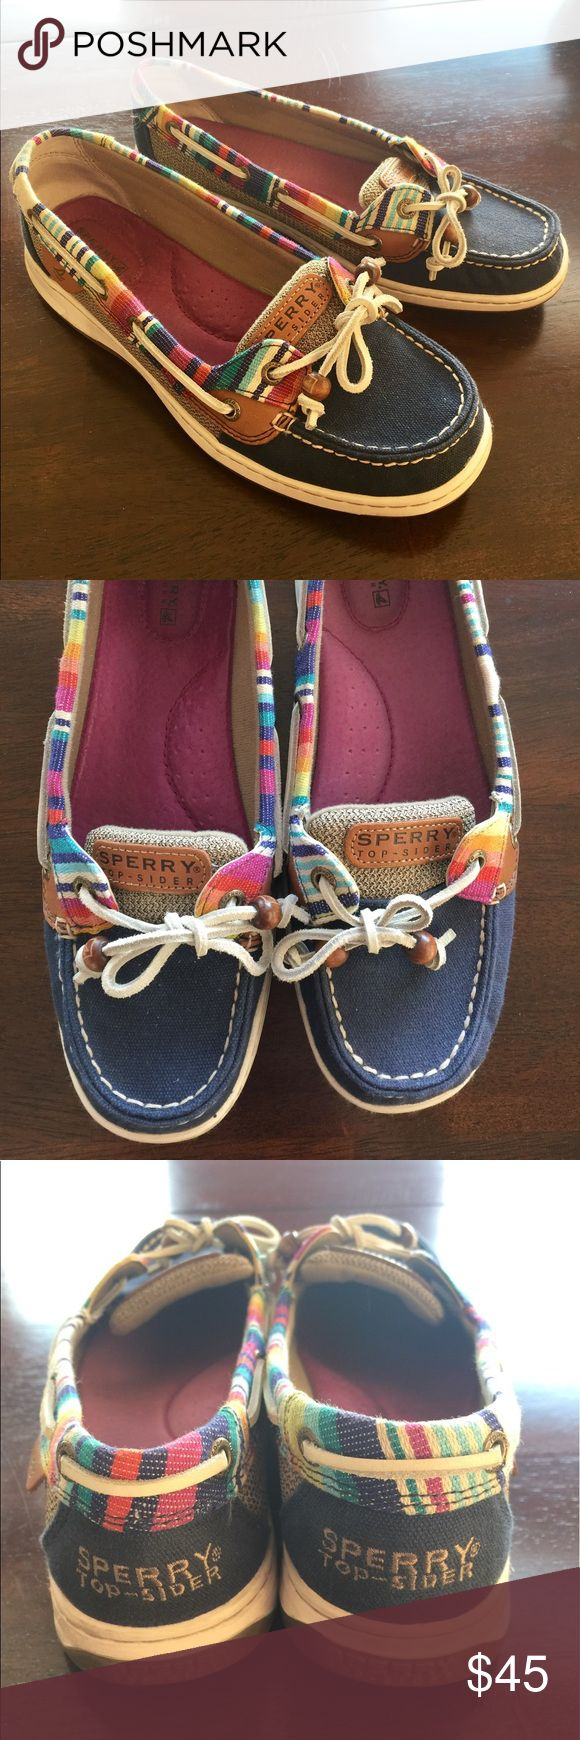 Sperry Angelfish Navy Serape (9265984) Like new; worn two times. Canvas/fabric upper with leather details. Sperry Top-Sider Shoes Flats & Loafers